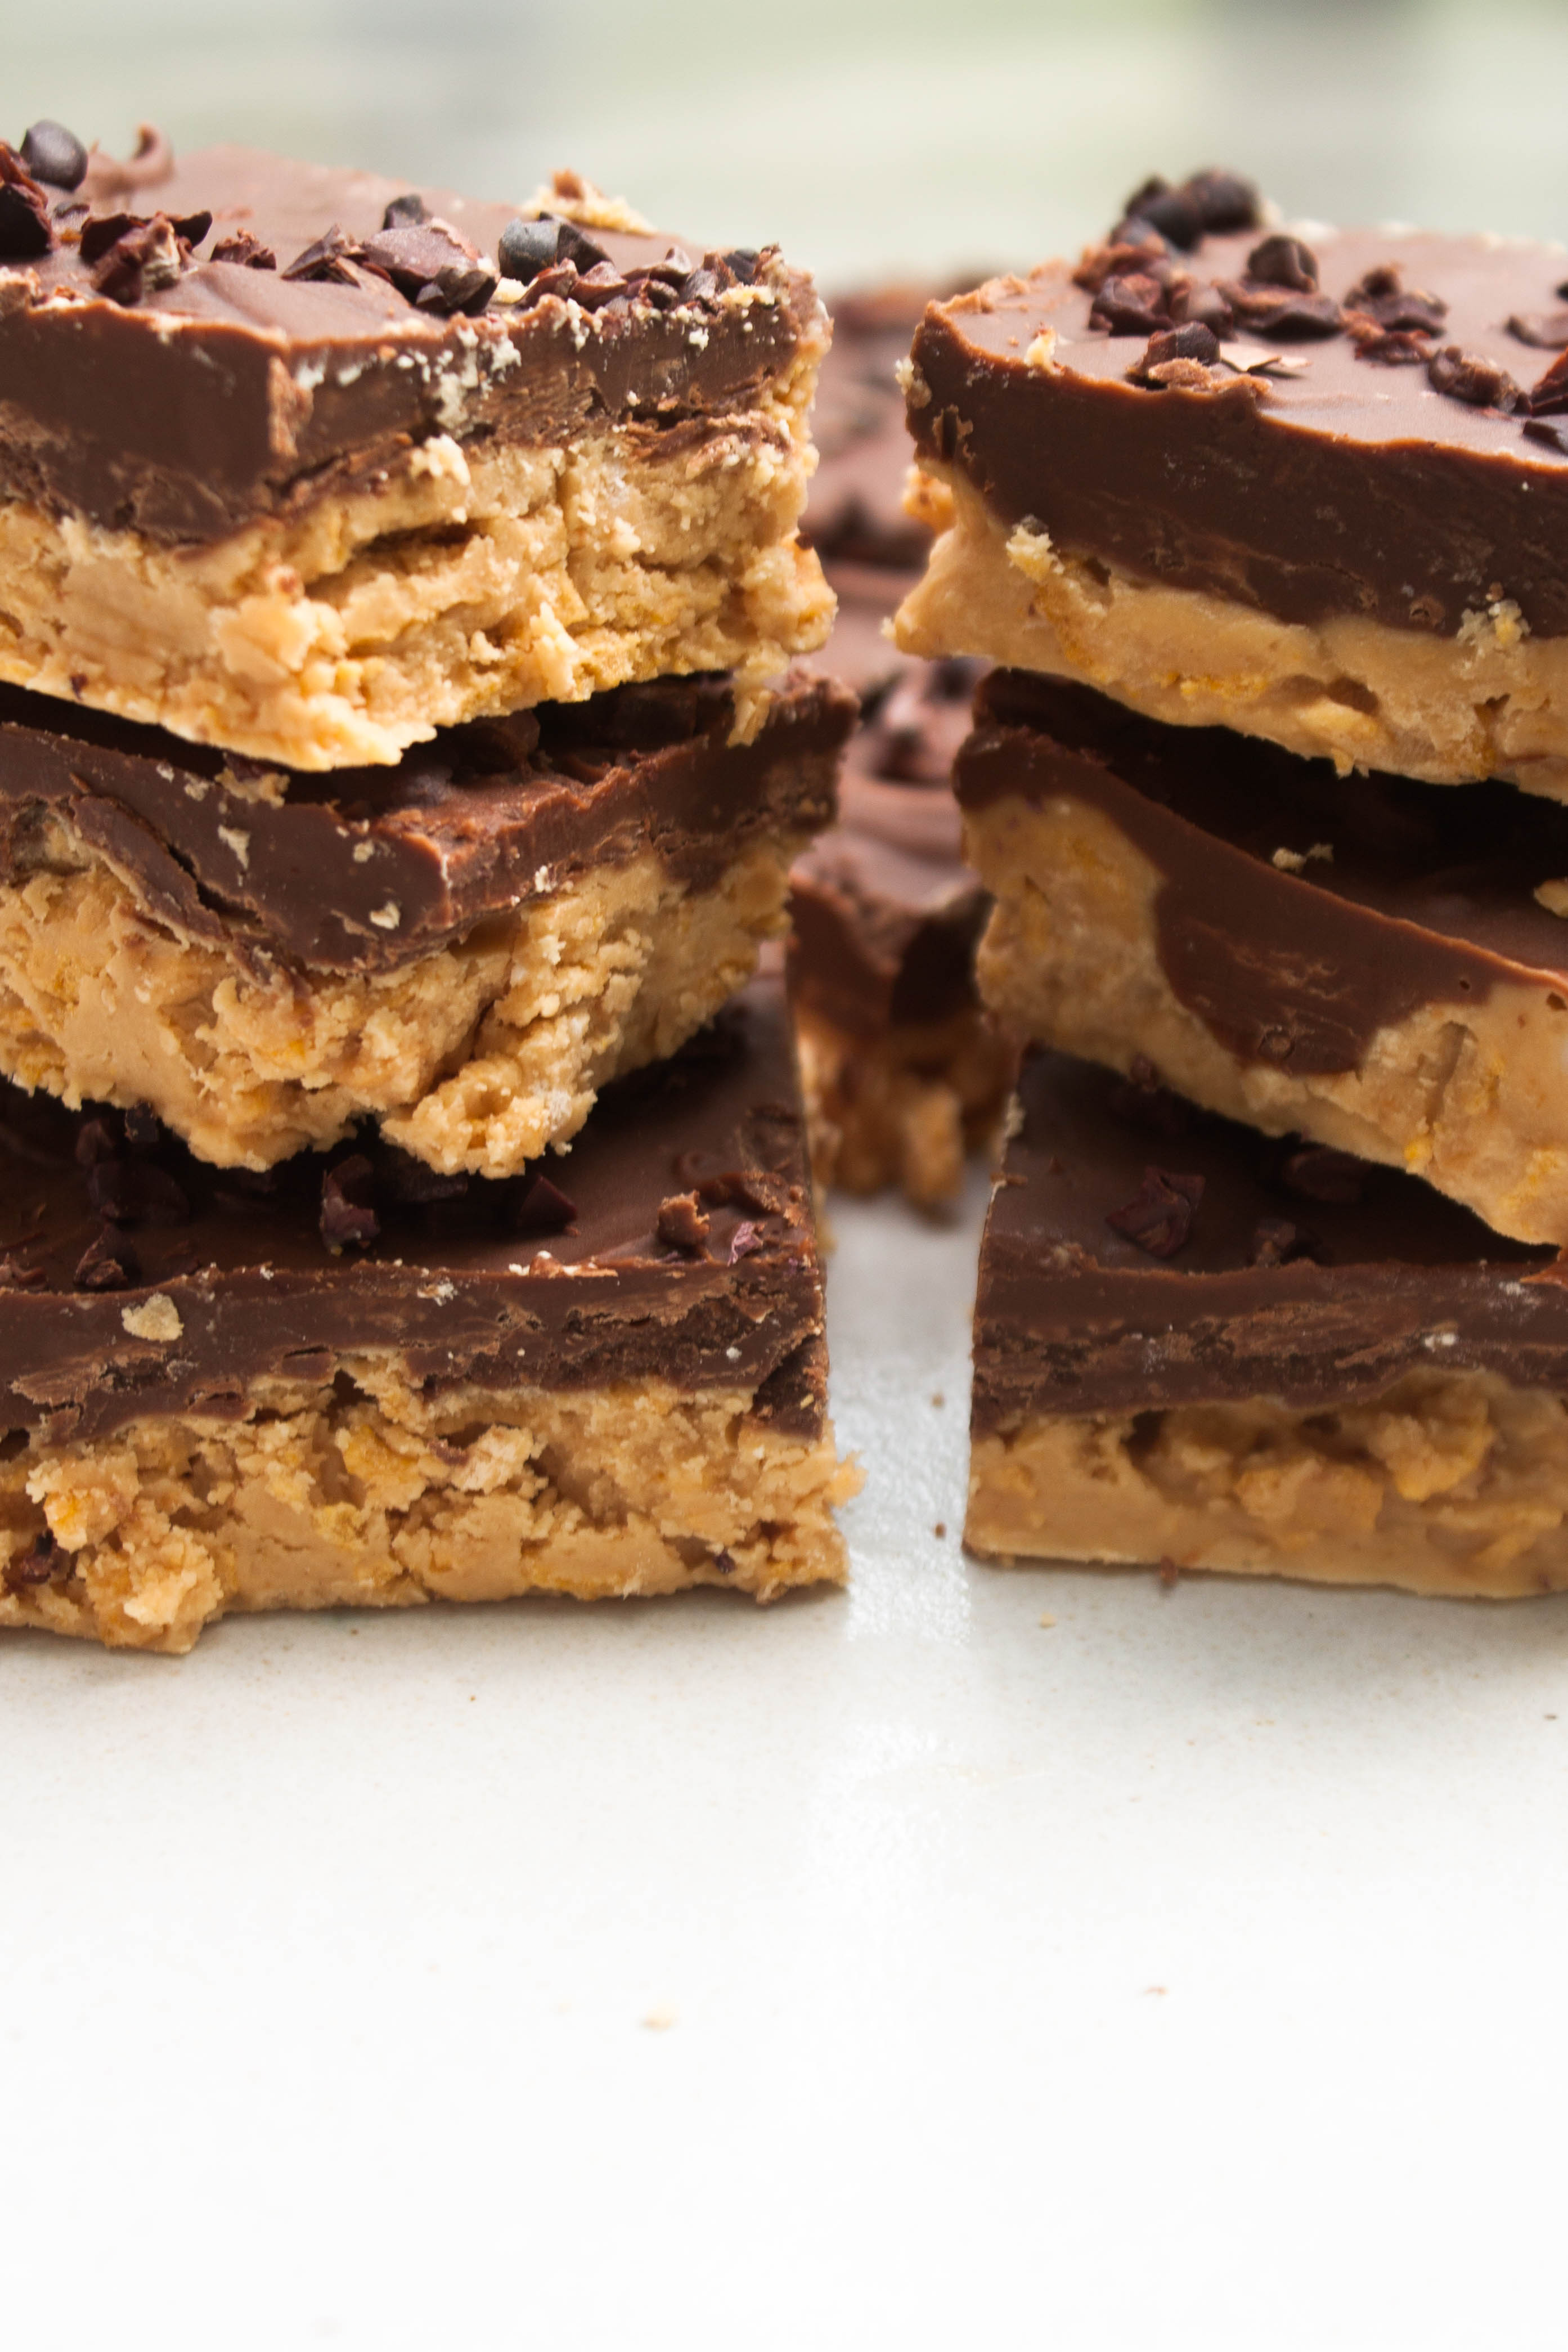 Cara's Outrageous Peanut Butter Bars